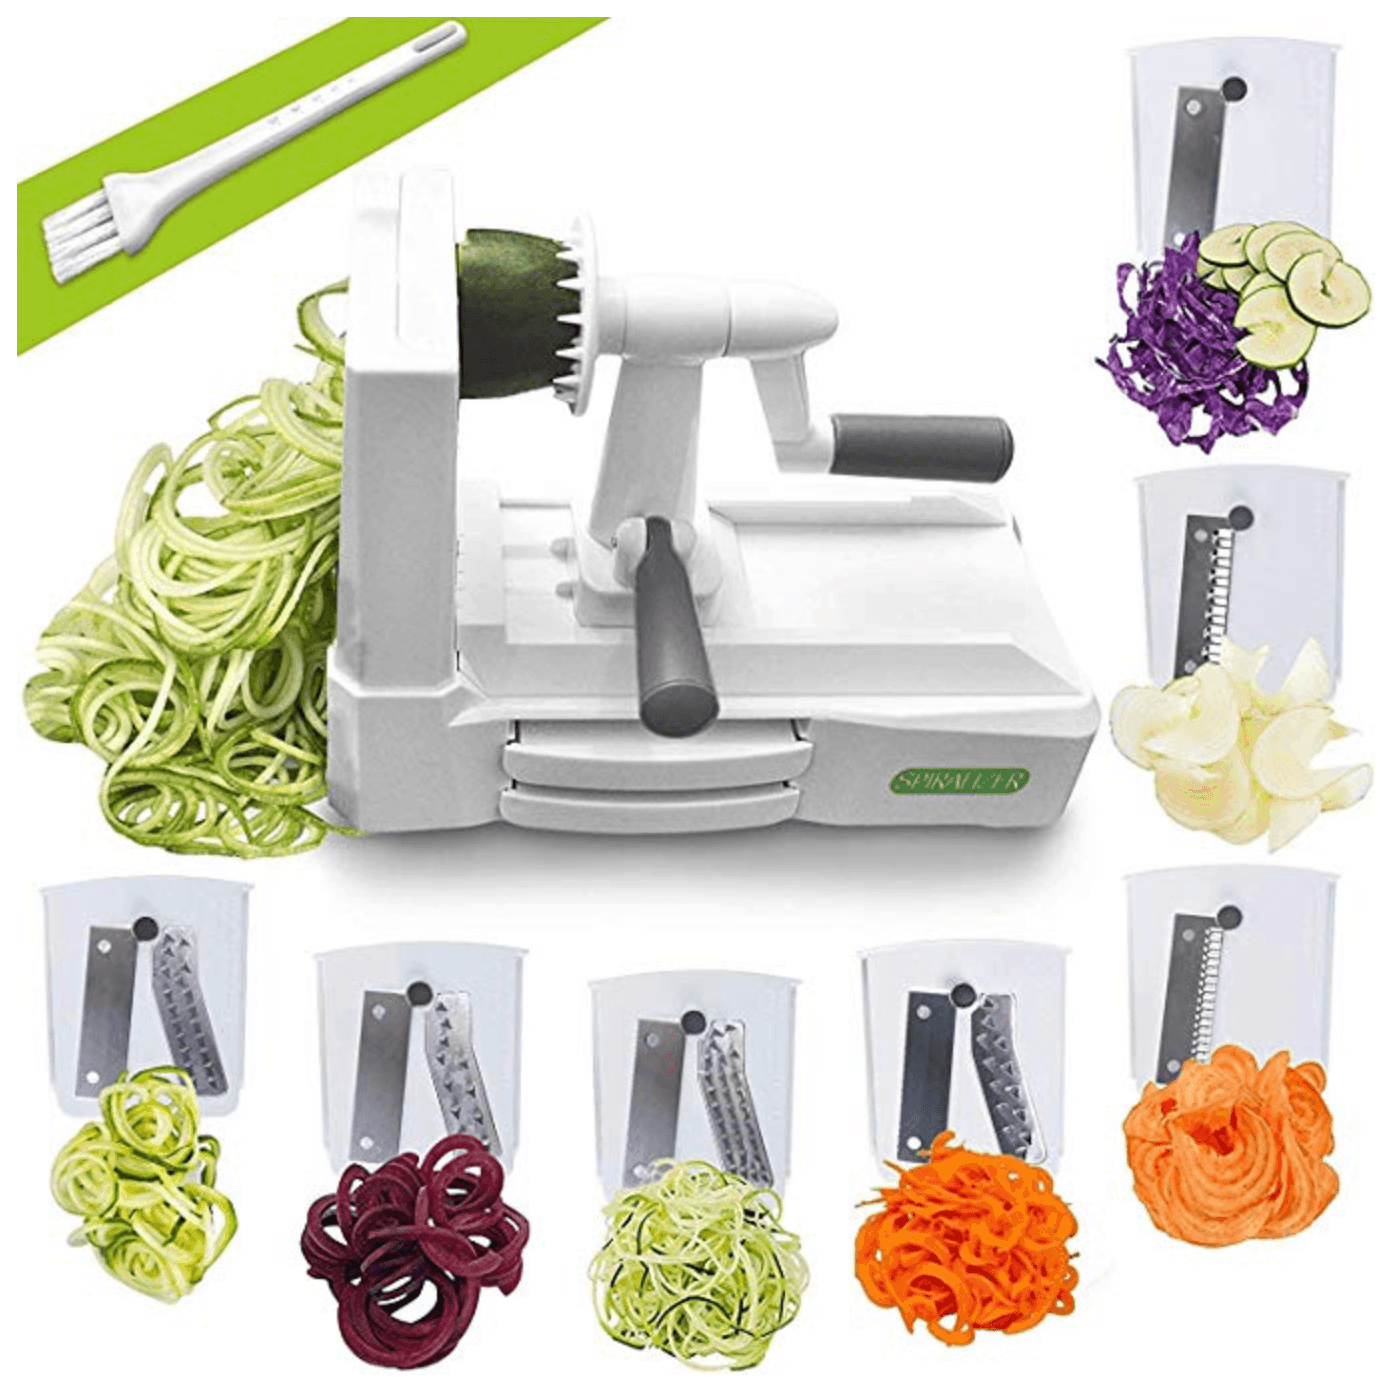 Inspiralizer the spiralizer that is a fun and easy vegetable noodle maker!